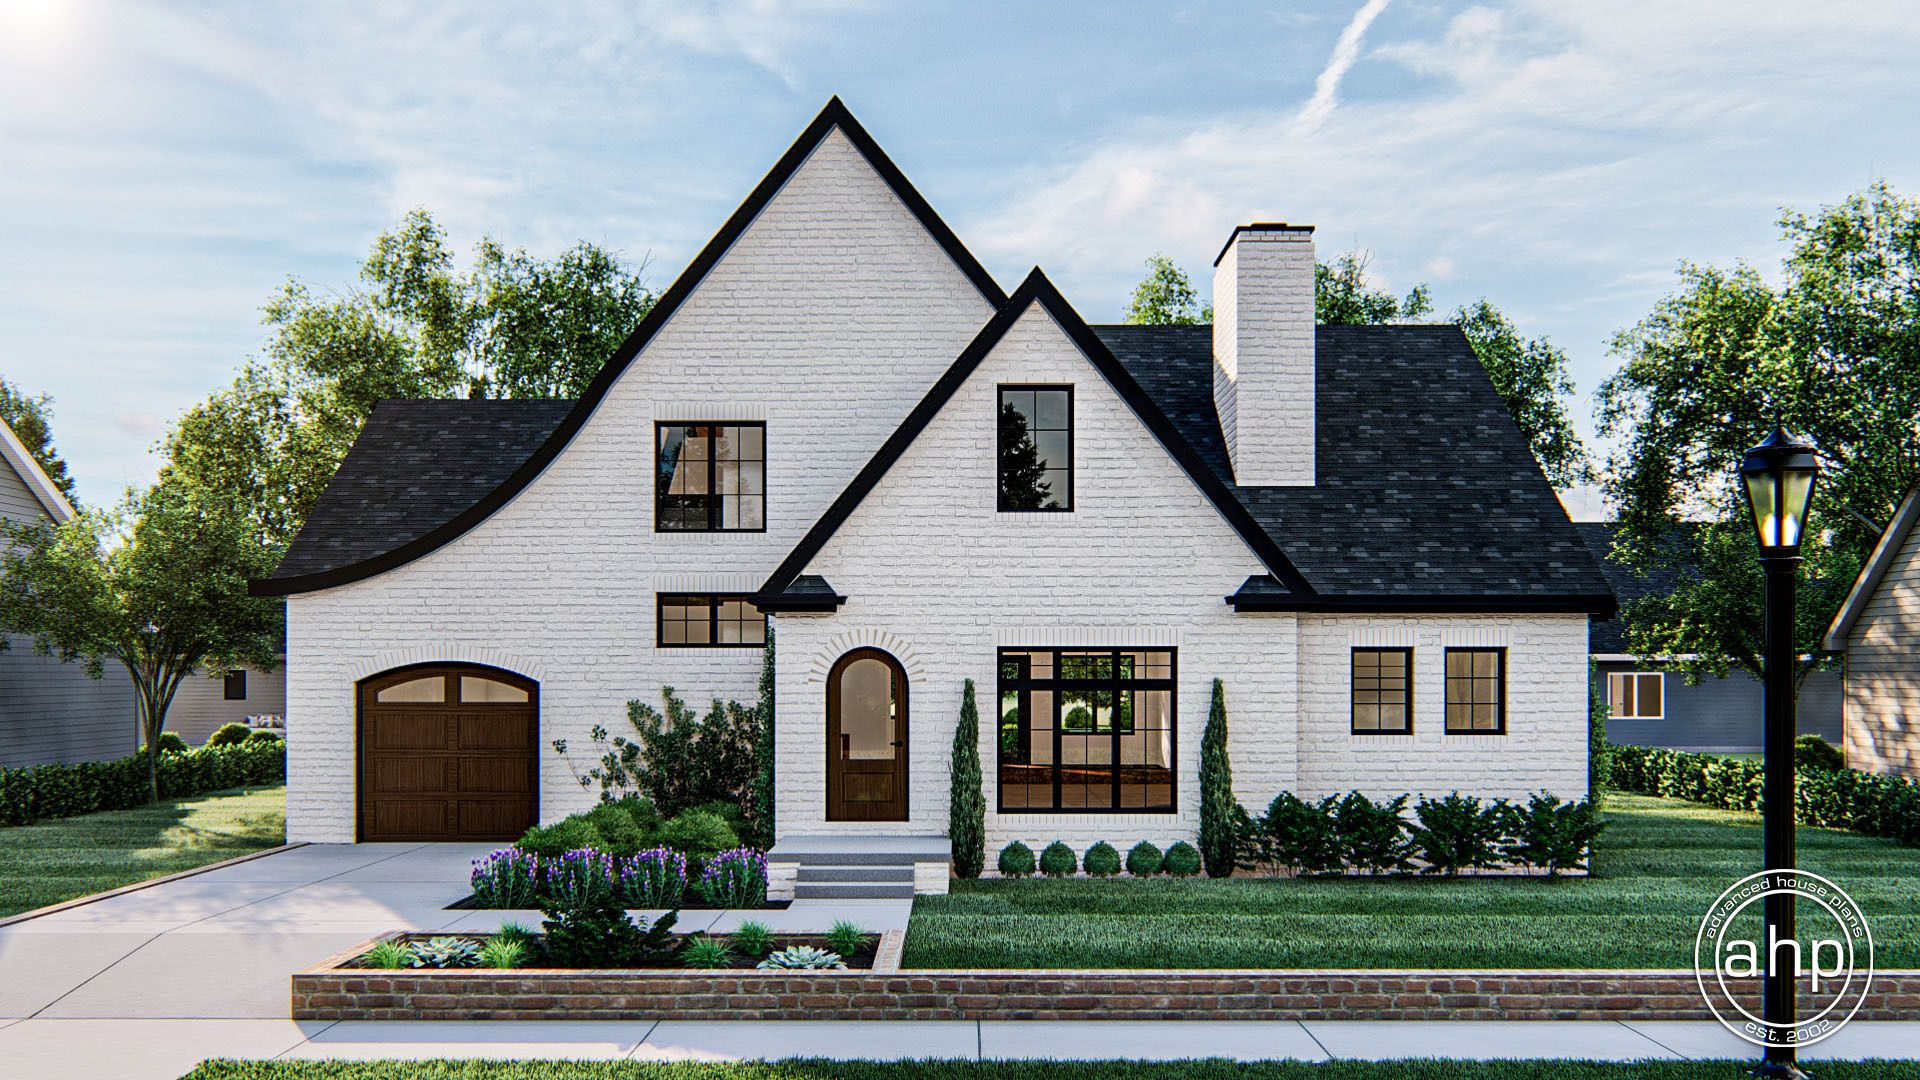 Read Park 1.5 Story Cottage House Plan in 2020   Exterior brick